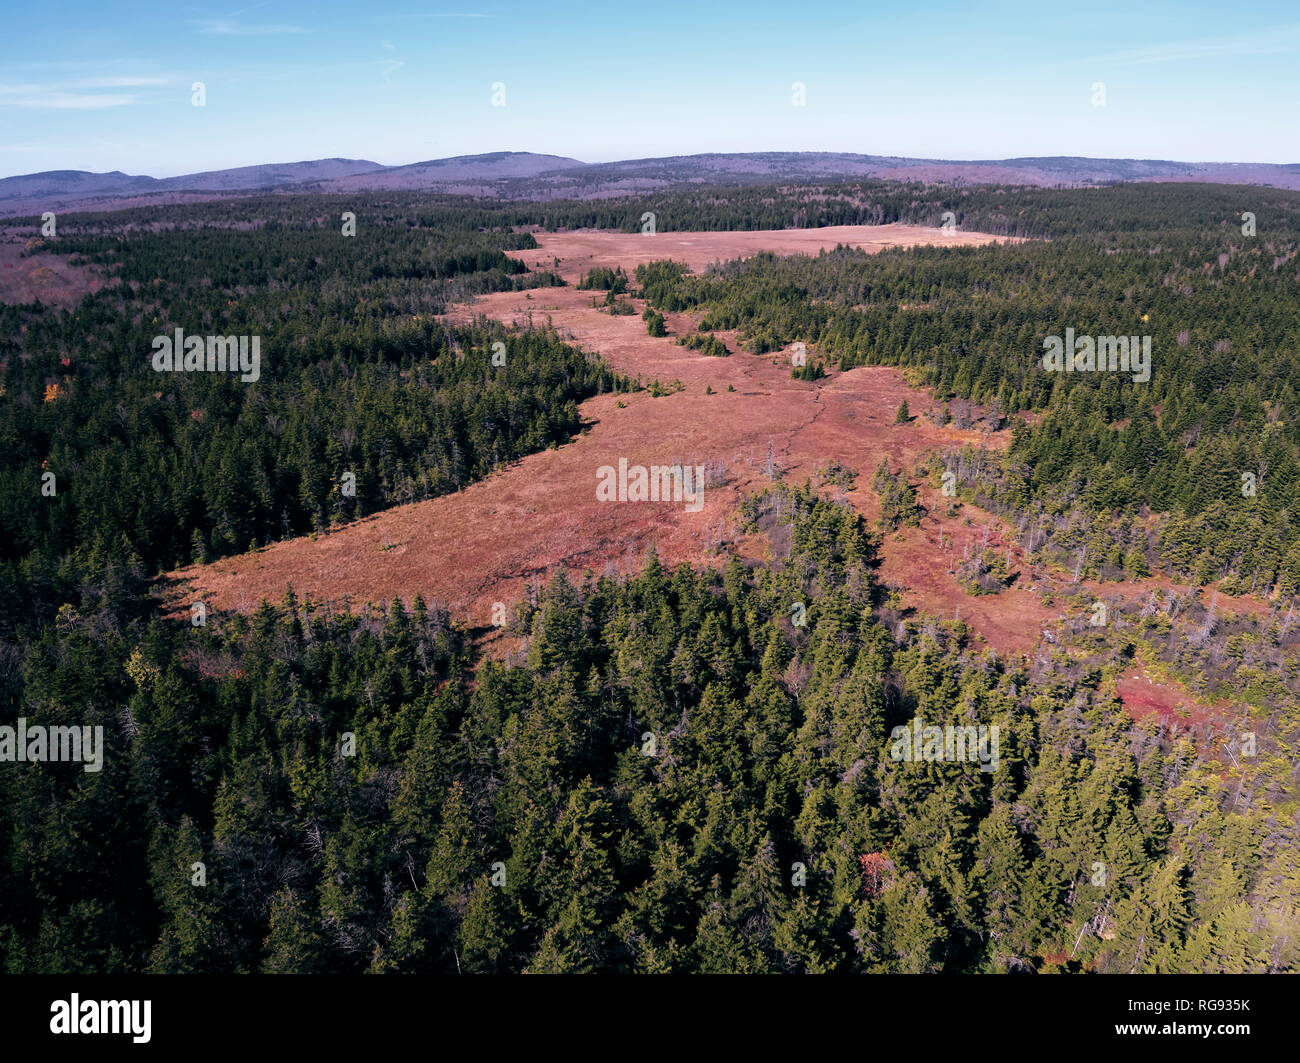 USA, West Virginia, Aerial view of Dolly Sods Wilderness area - Stock Image